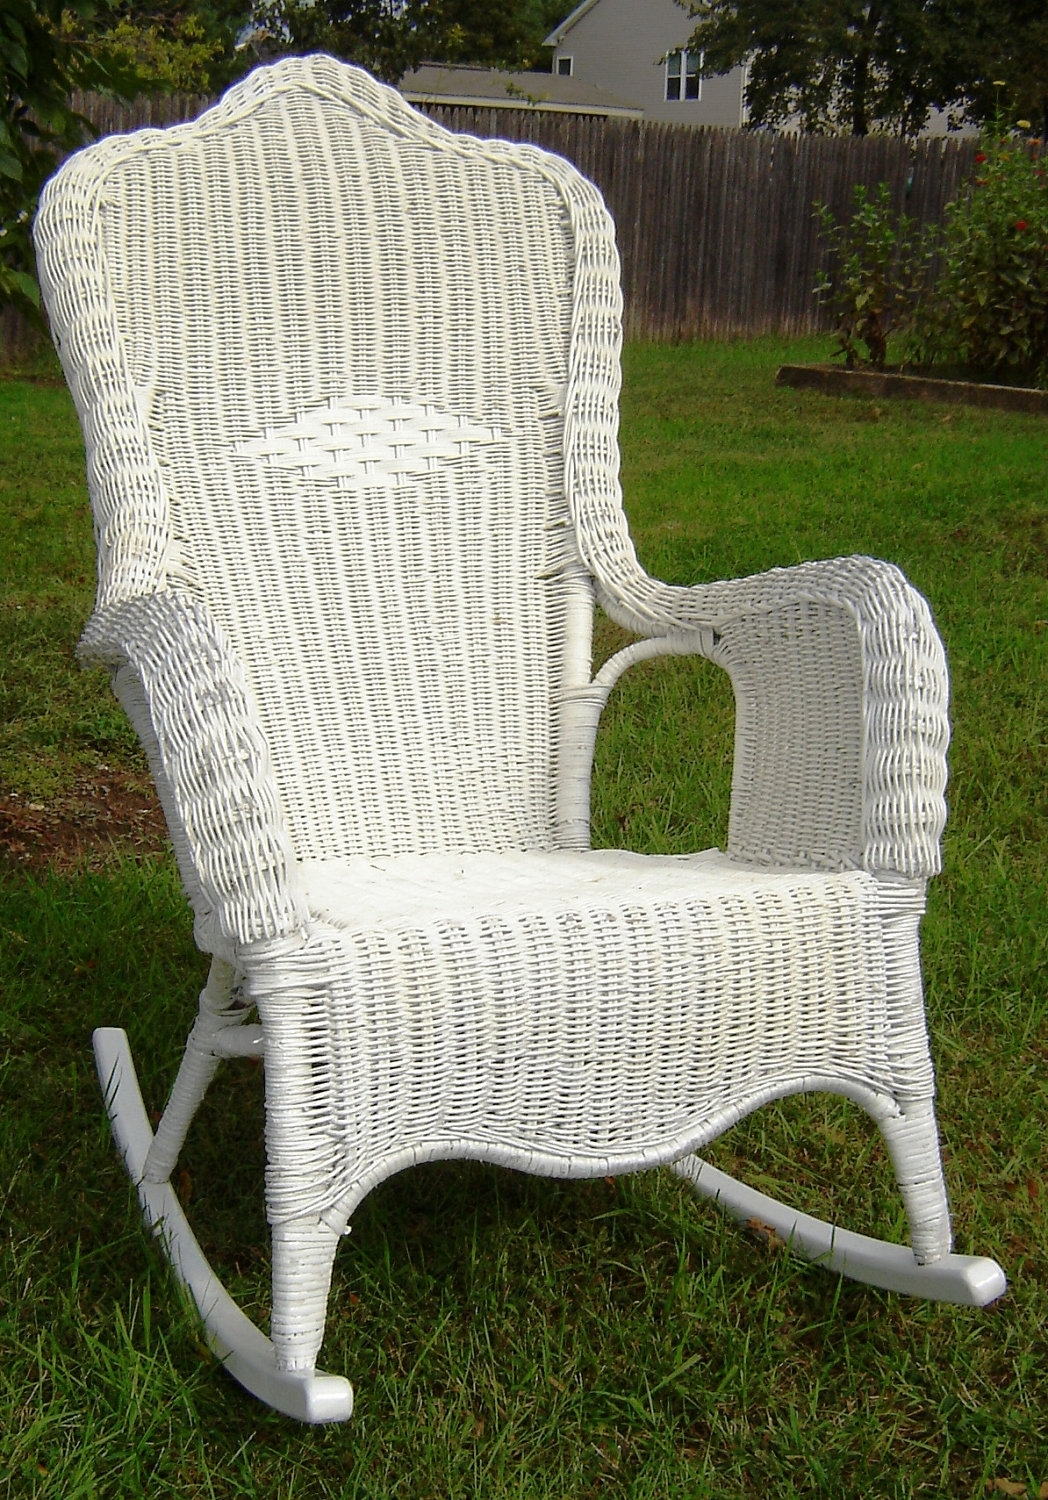 Most Current Vintage White Wicker Rocking Chair — Wilson Home Ideas : Choosing A With Regard To White Wicker Rocking Chairs (View 6 of 15)